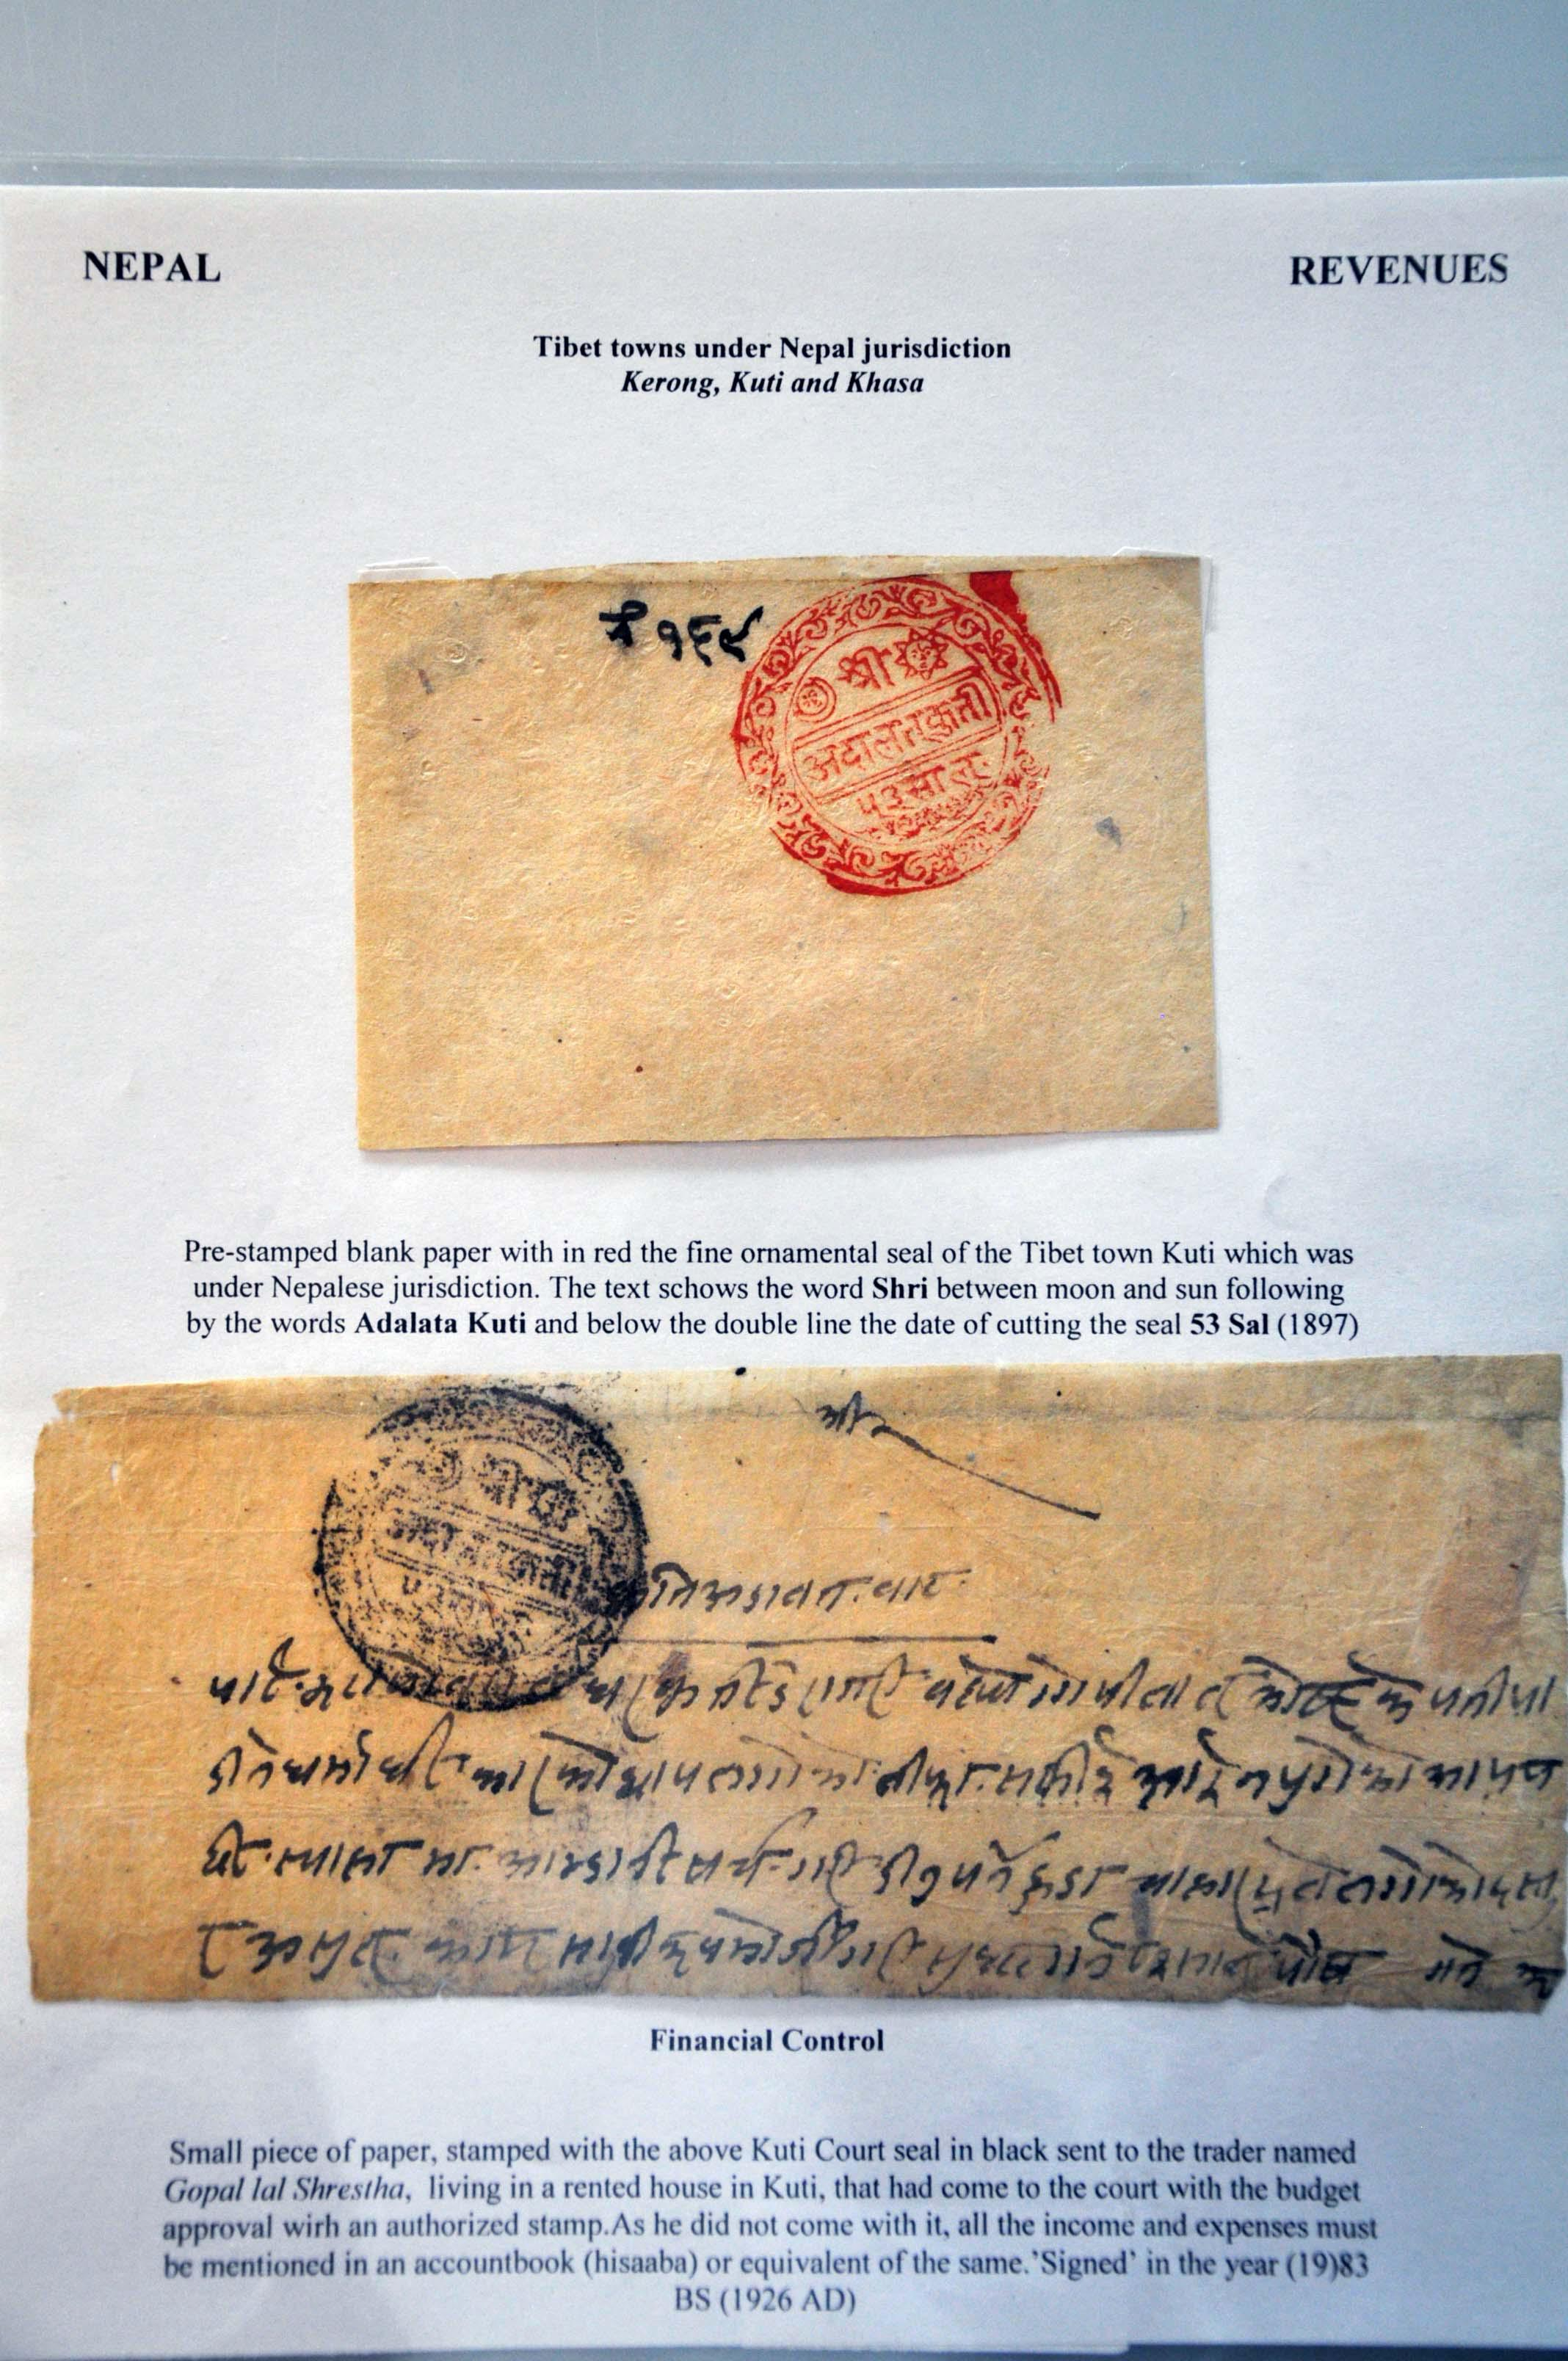 Lot 81 - Great Britain and former colonies Nepal -  Corinphila Veilingen Auction 245-246 Day 1 - Nepal - The Dick van der Wateren Collection, Foreign countries - Single lots, Picture postcards